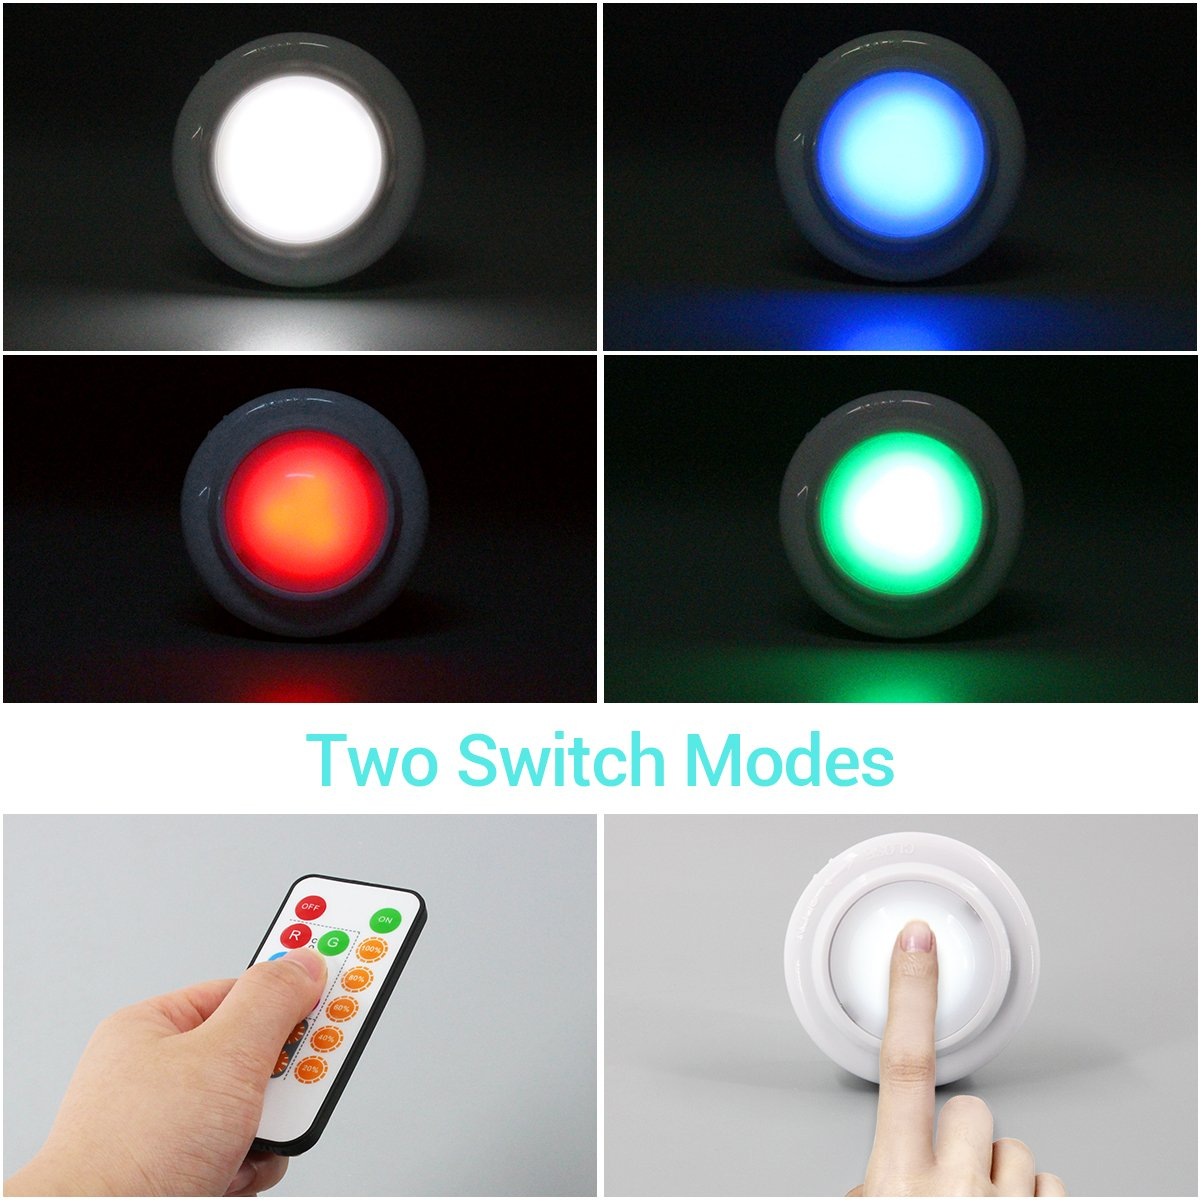 Wireless LED Closet Lights, RGB Color Changing Puck Light with Remote Control, Touch Sensor LED Night Light, Battery Operated Under Cabinet Light - 6 Pack (18 PCS Battery Included) by Best World LED (Image #2)